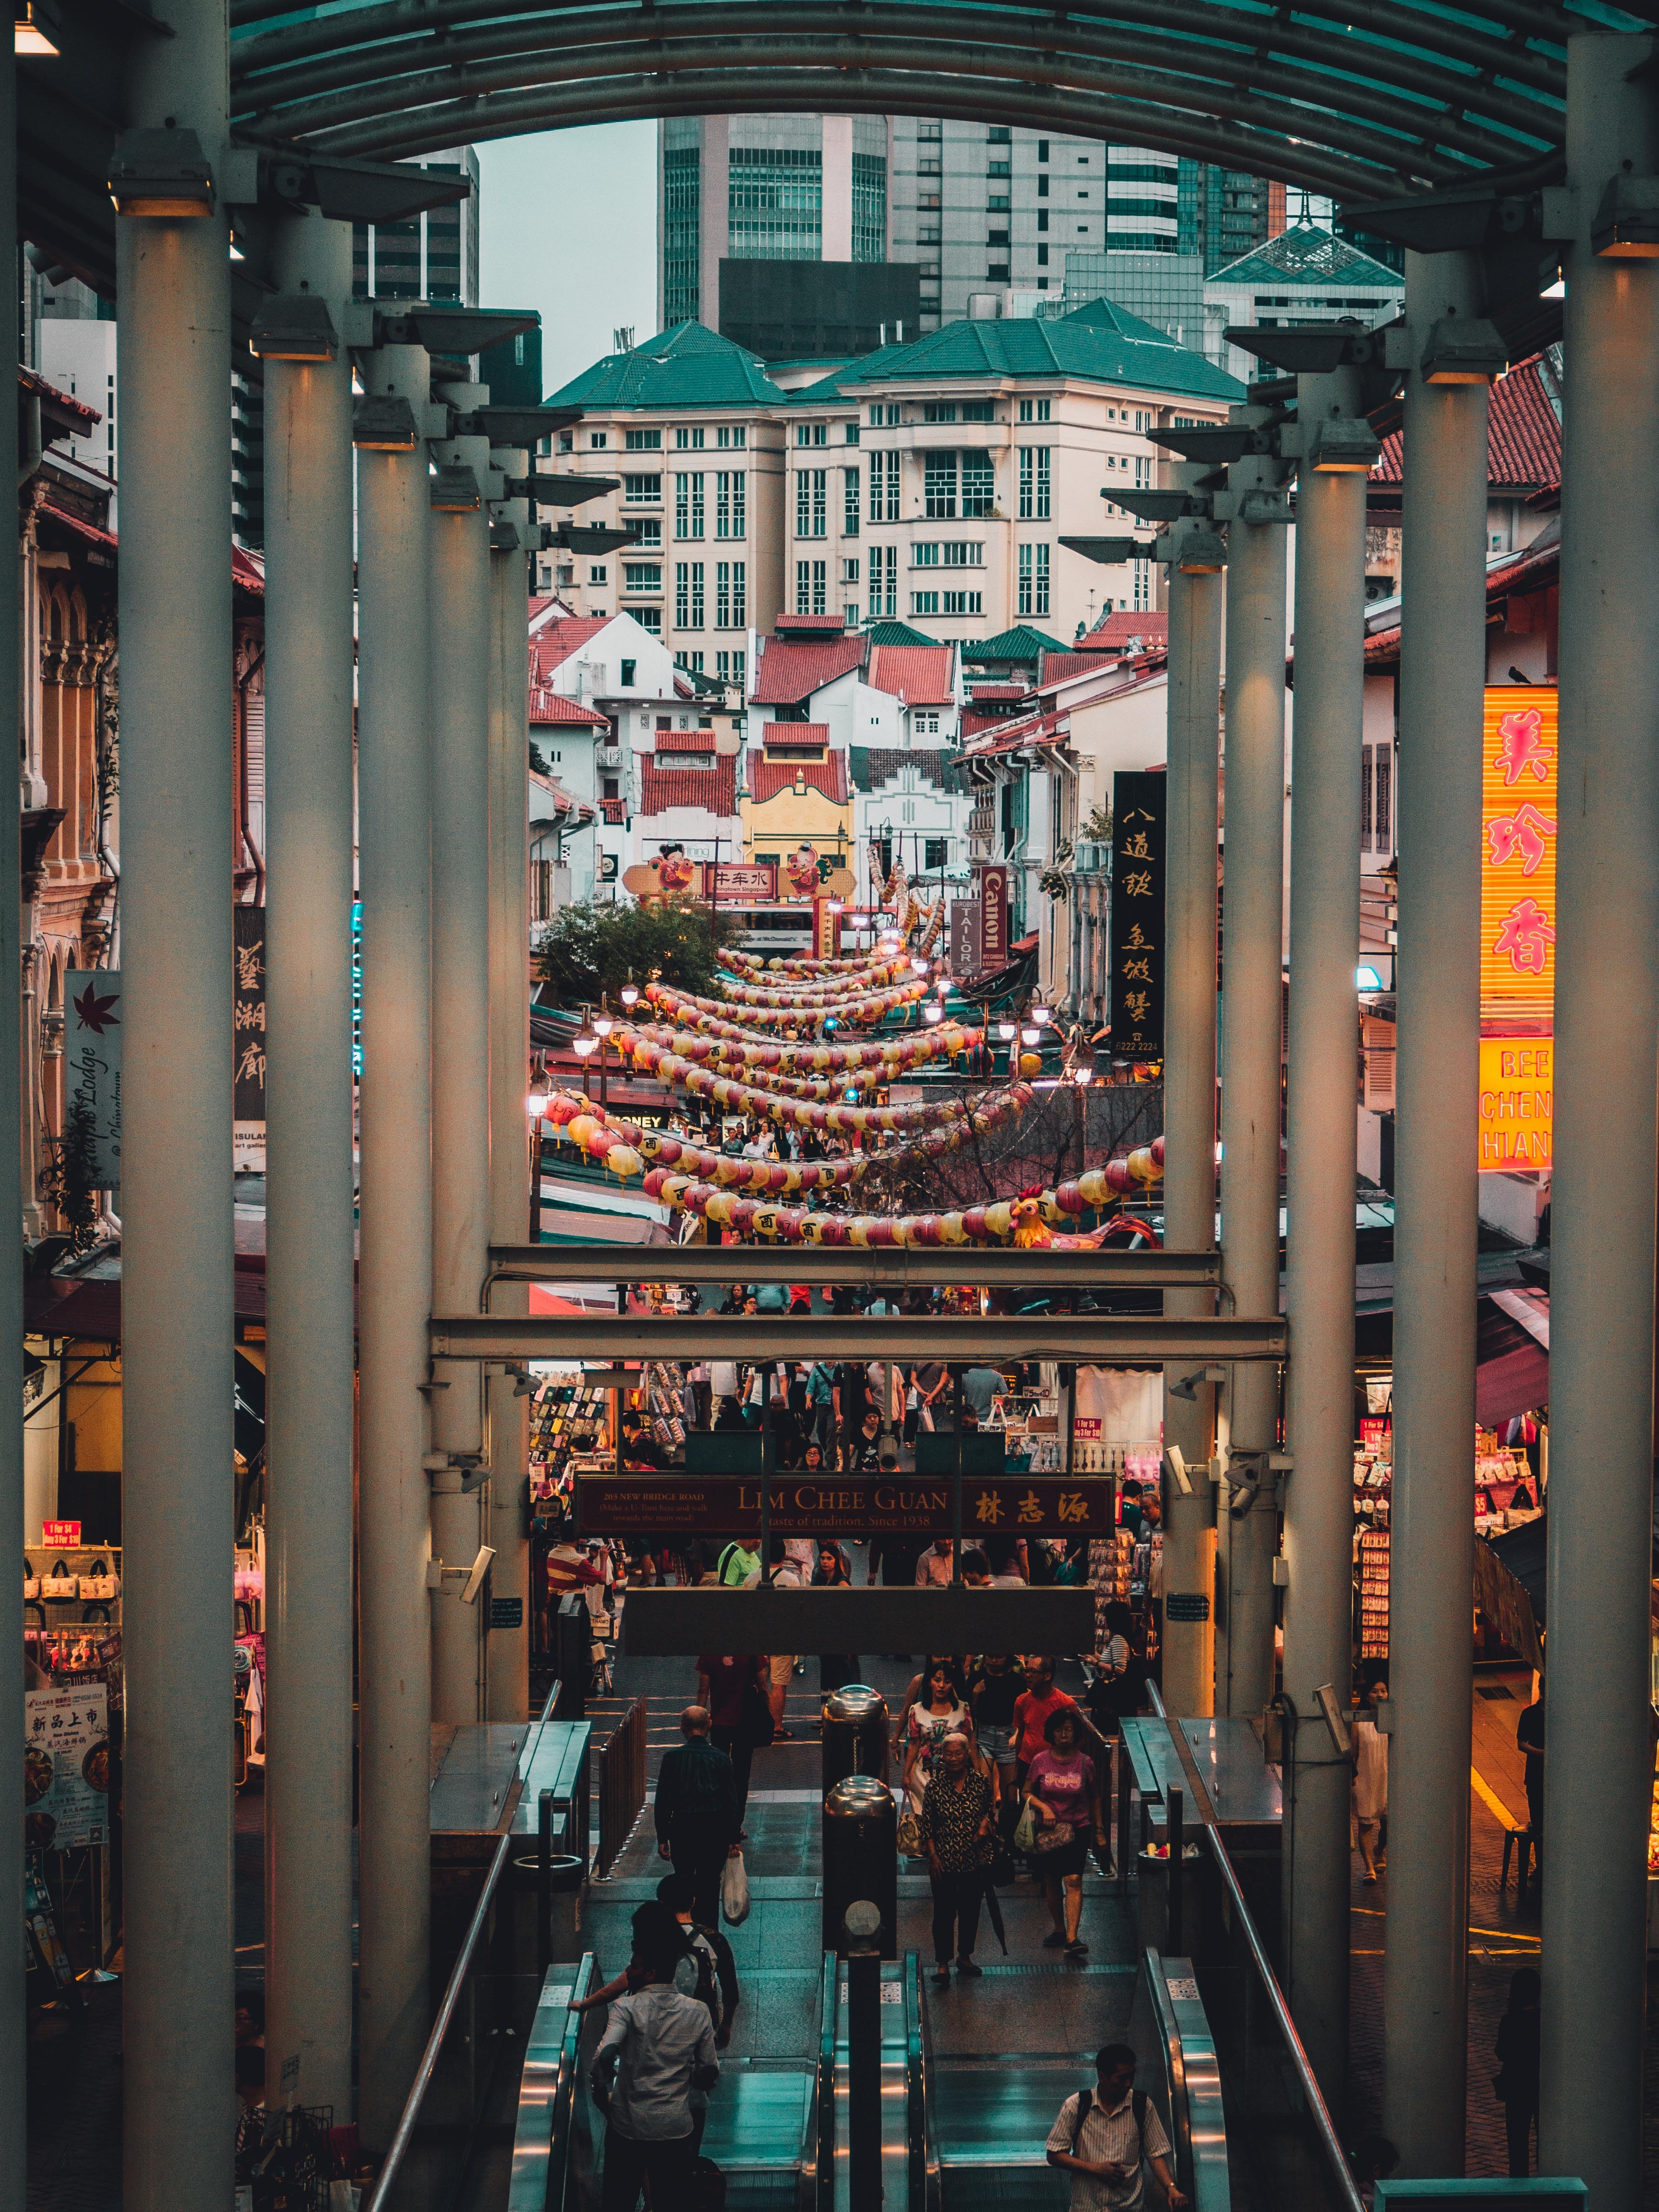 An escalator leading to a market street in Chinatown